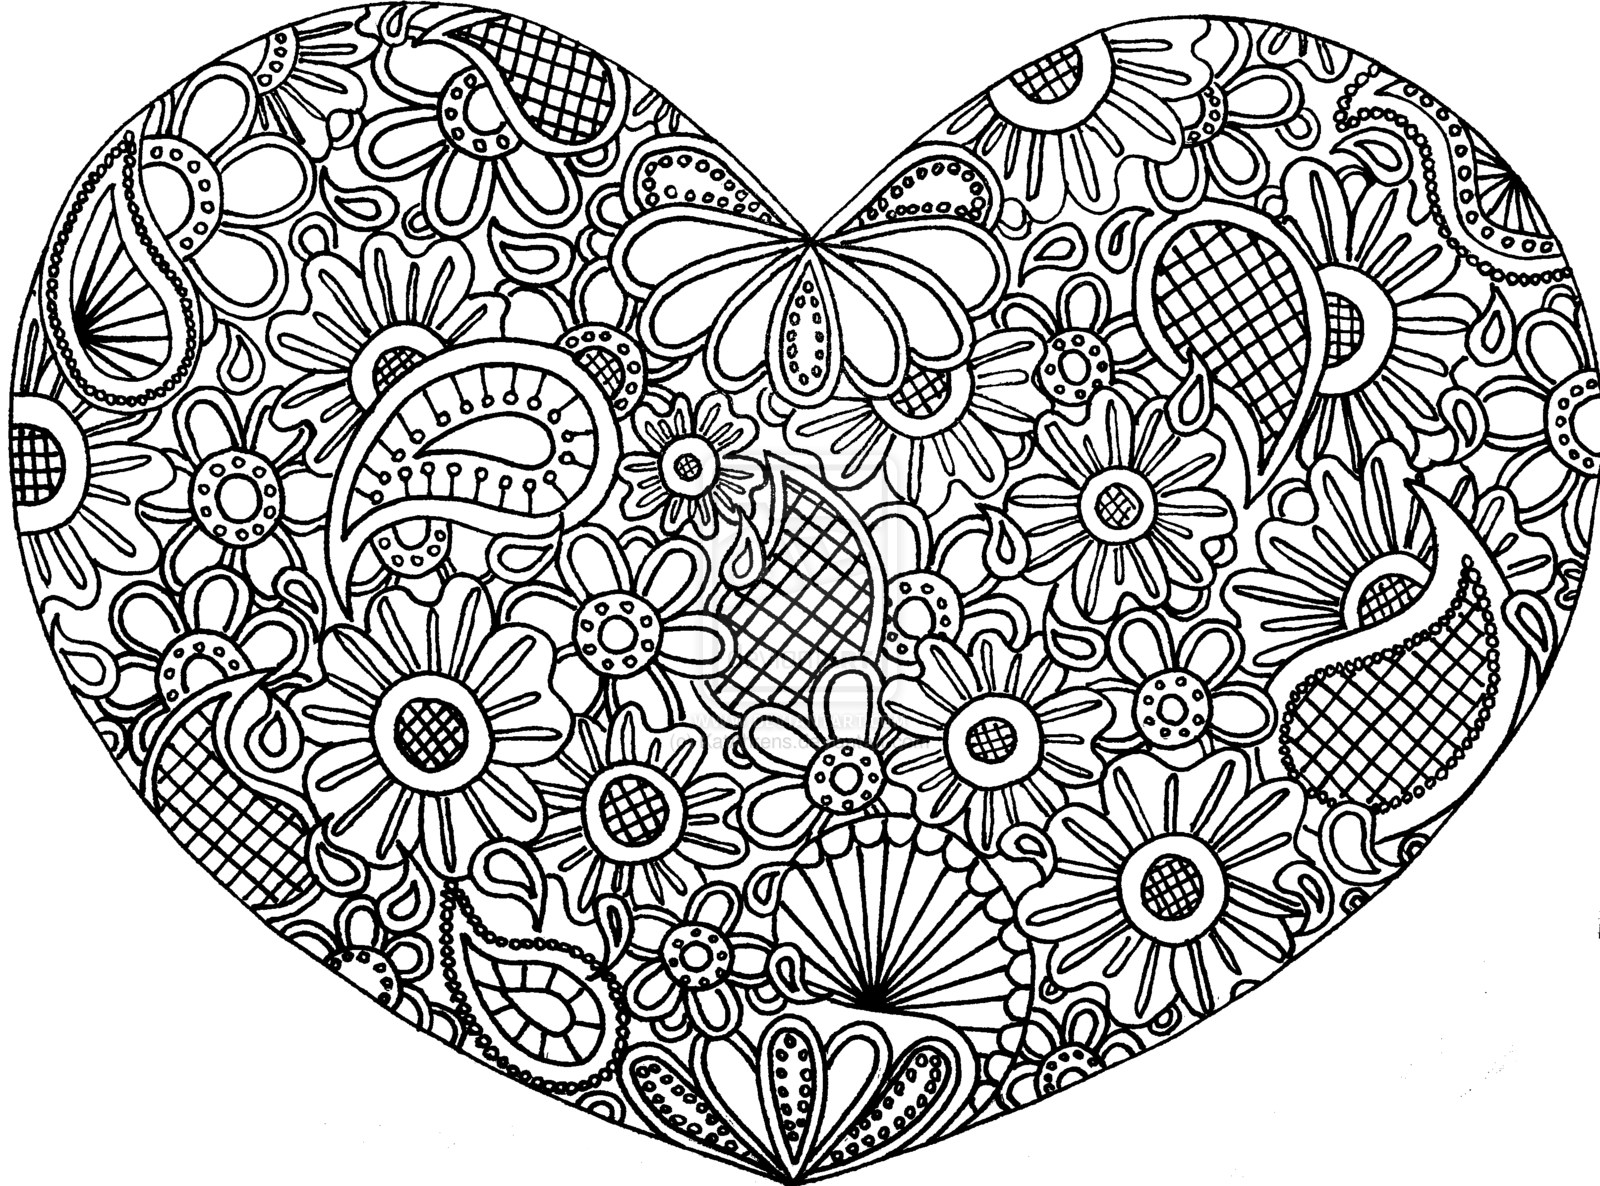 Doodle art coloring pages printable - 15 Pics Of Printable Coloring Pages Doodle Art Heart Doodle Art